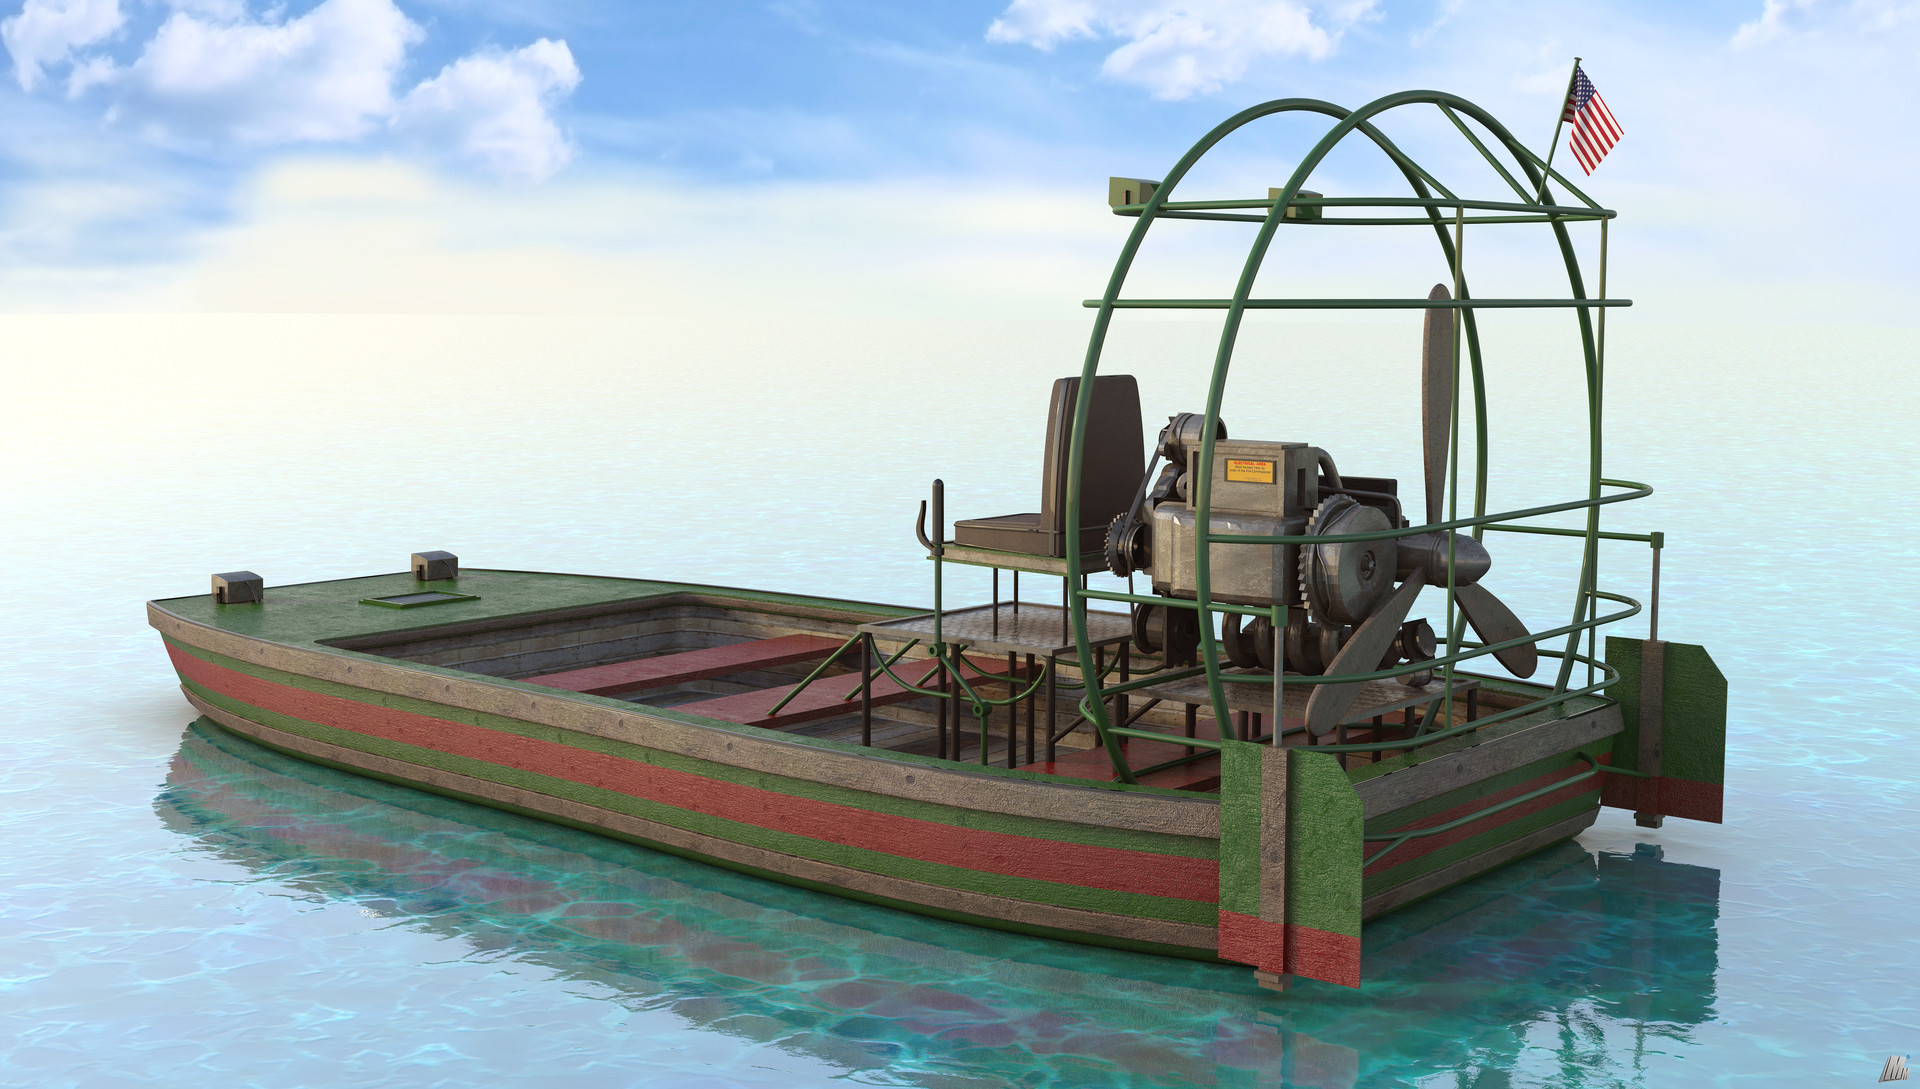 Marc mons airboat1